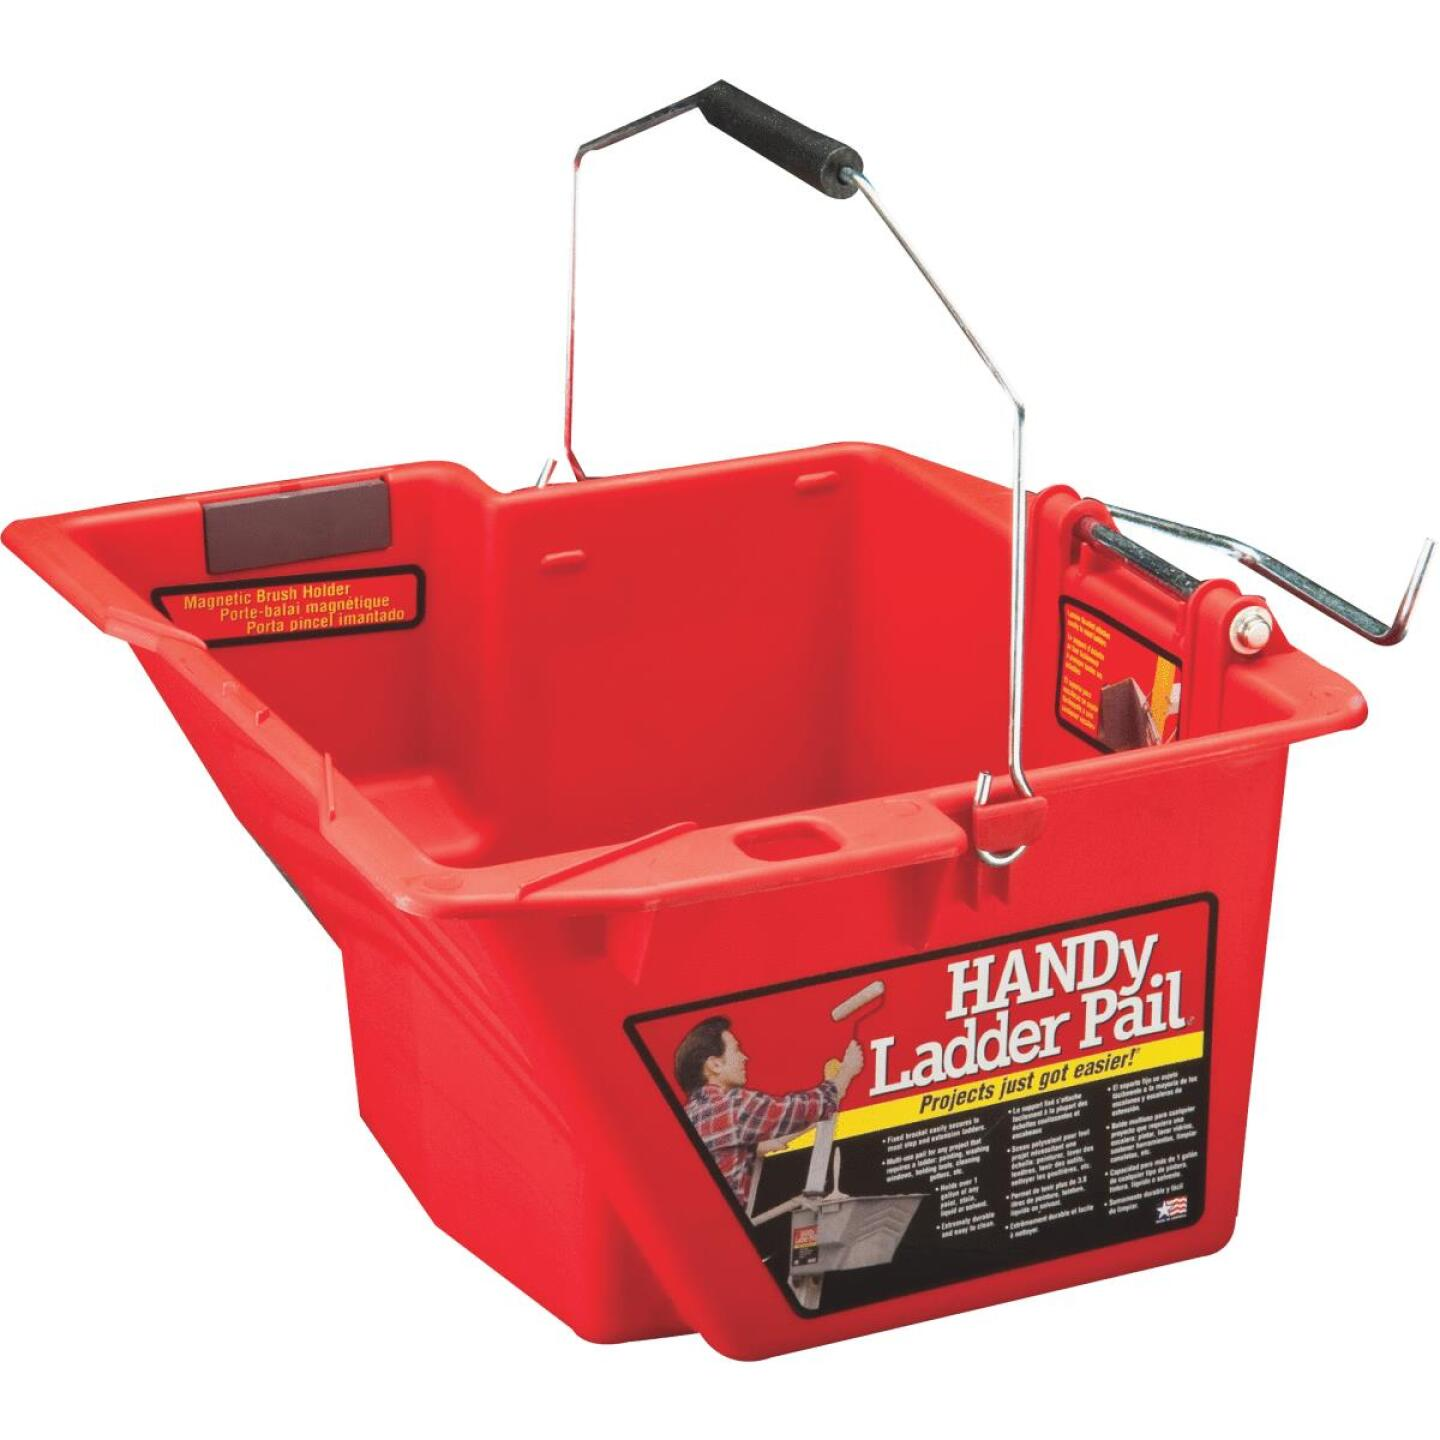 HANDy Ladder Pail 1.5 Gal. Gray Painter's Bucket with Fixed Ladder Bracket And Magnetic Brush Holder Image 1